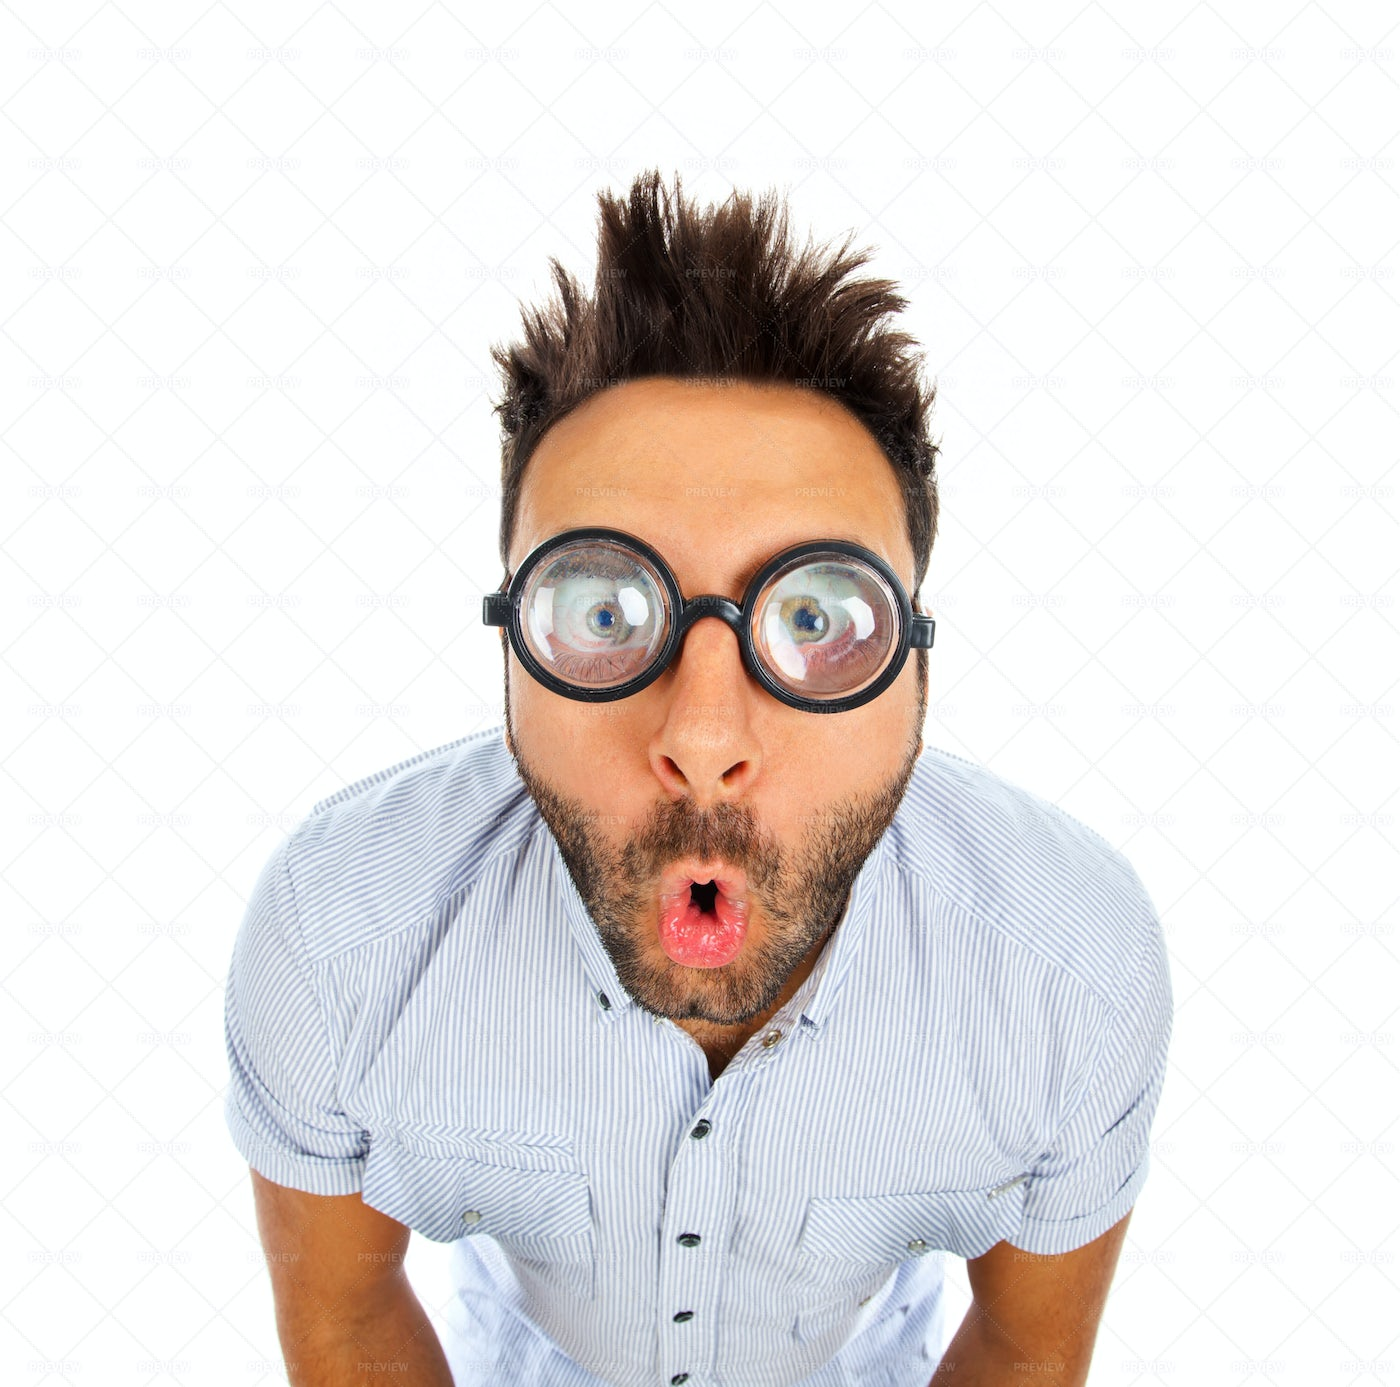 Man With A Funny Expression: Stock Photos